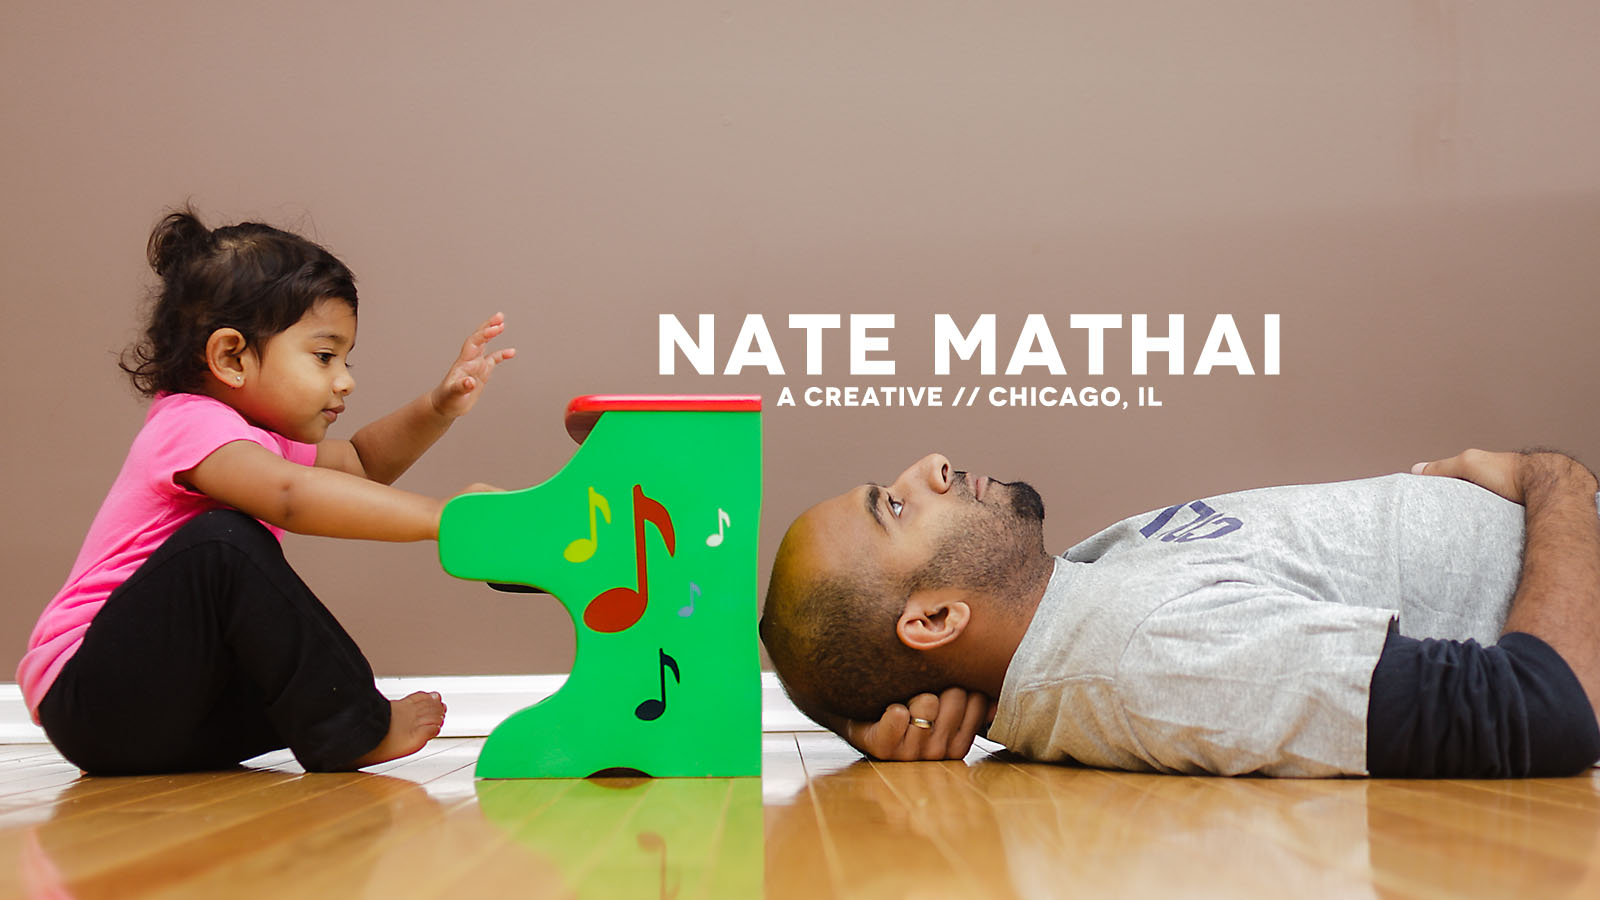 top image for The Walk Home by chicago wedding photographer nate mathai